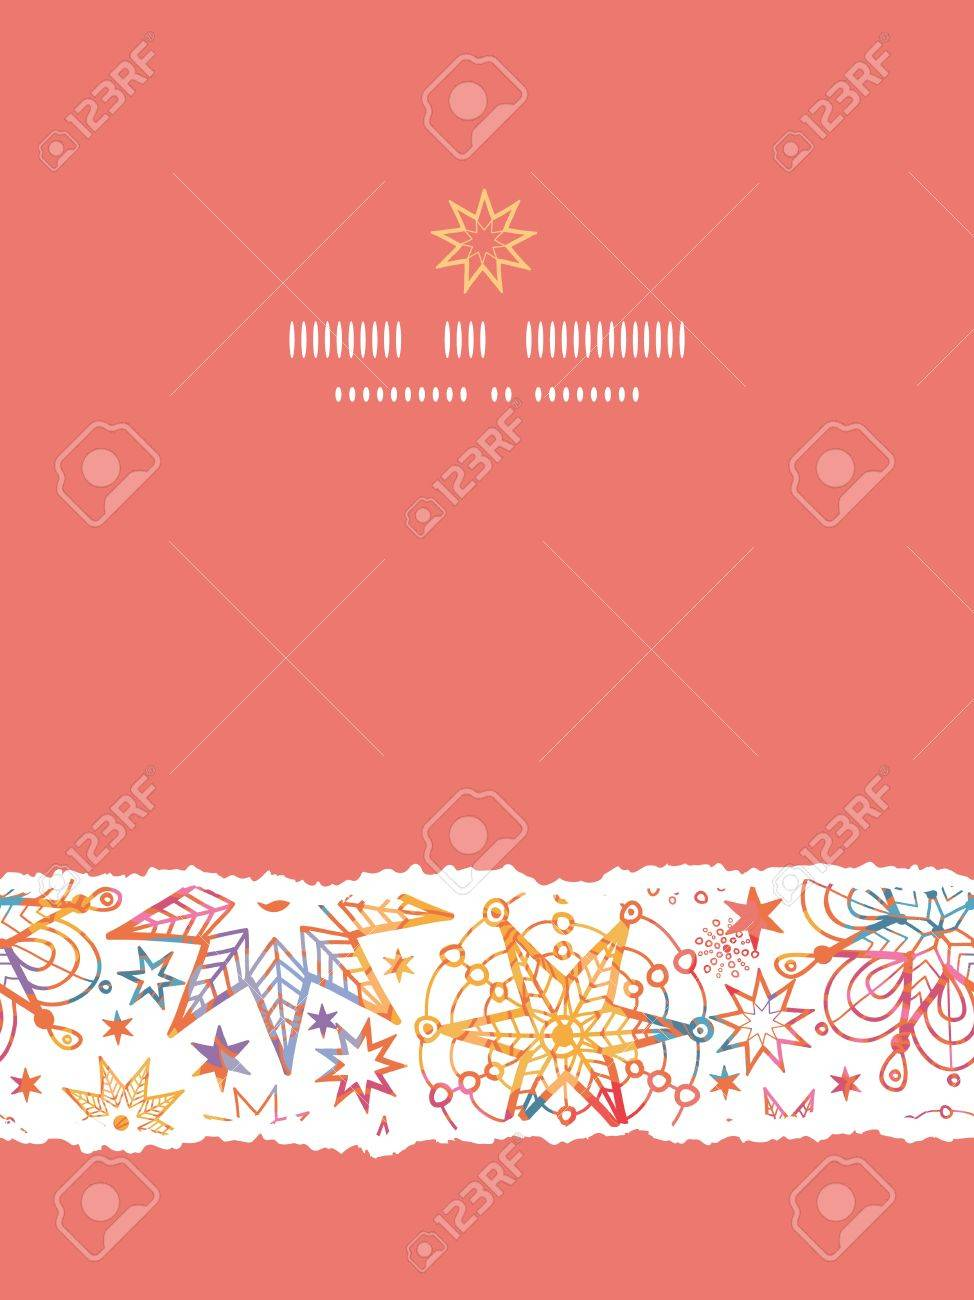 Textured Christmas Stars Vertical Torn Seamless Pattern Background - 20342040